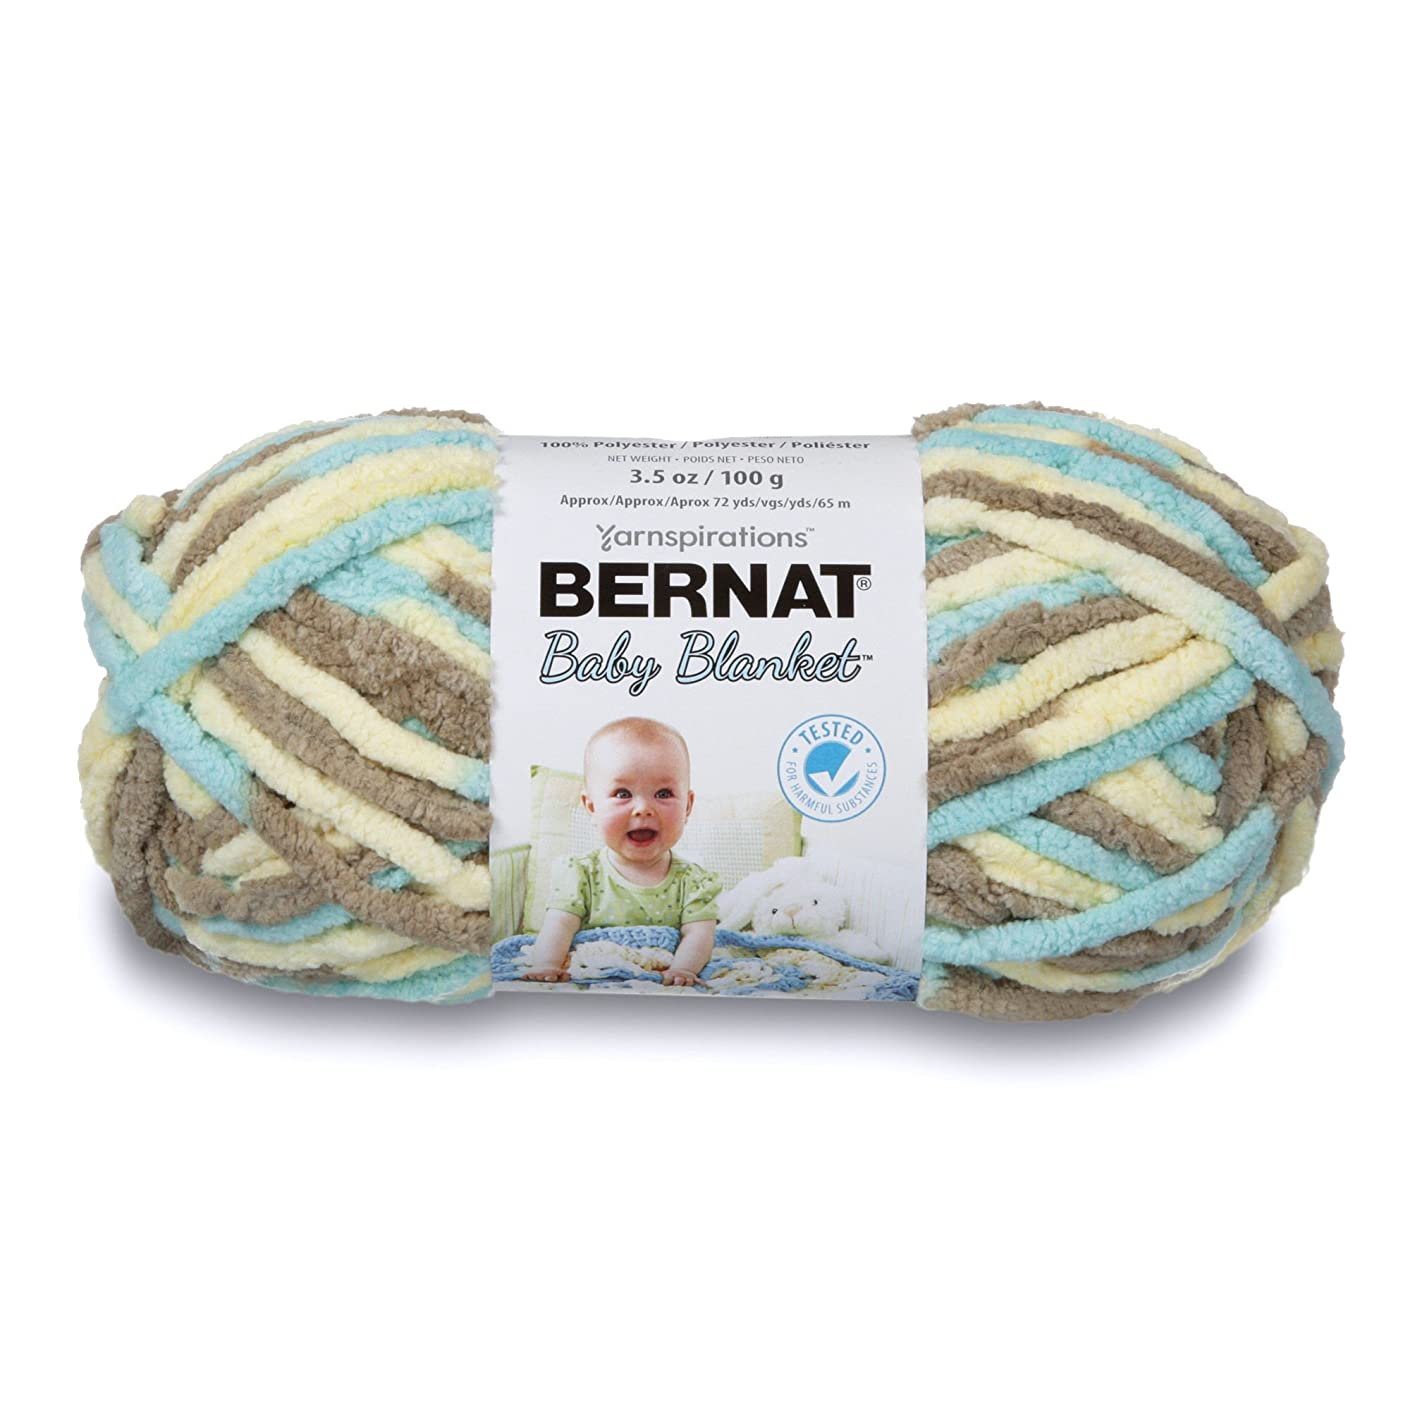 Bernat Baby Blanket Yarn, 3.5 oz, Gauge 6 Super Bulky, Beach Babe